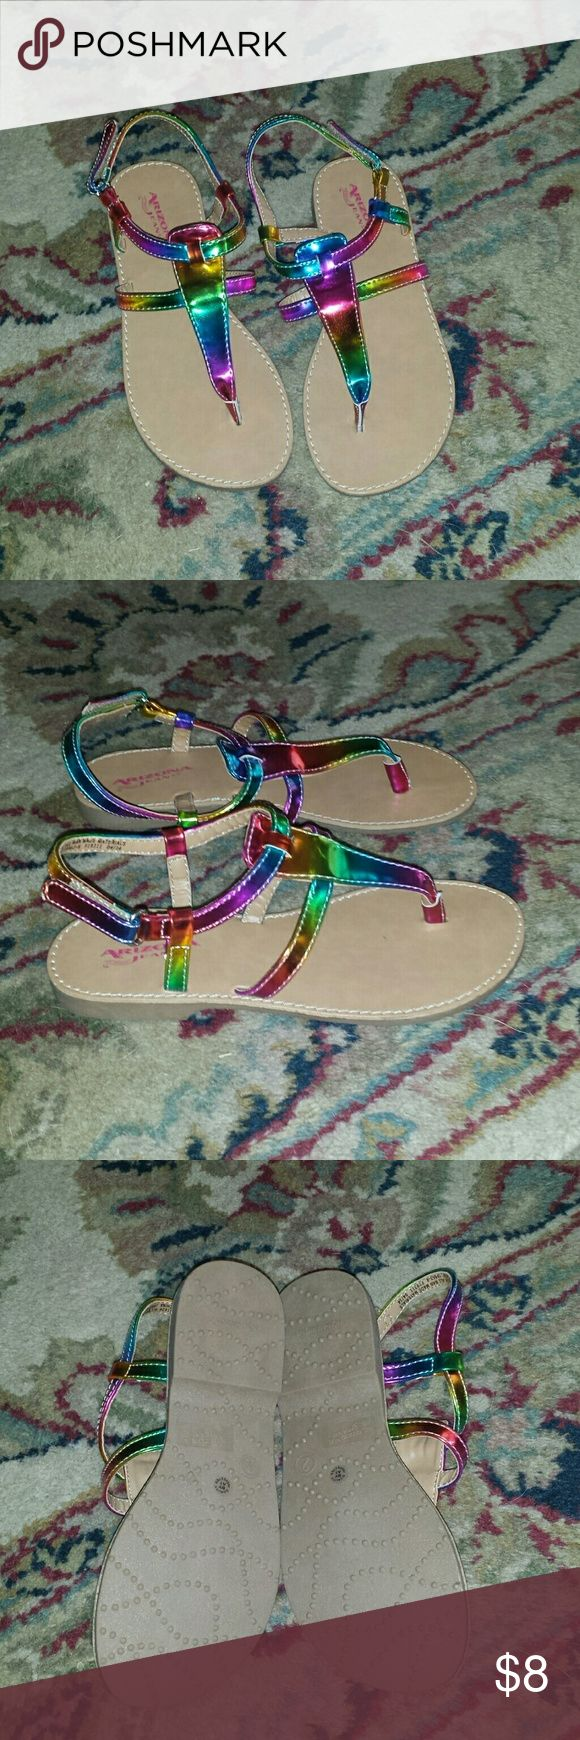 Girl's Rainbow Sandals Up for sale is a pair of Rainbow Sandals by Arizona Jeans. They are a size 2.  These have never been worn. Arizona Jean Company Shoes